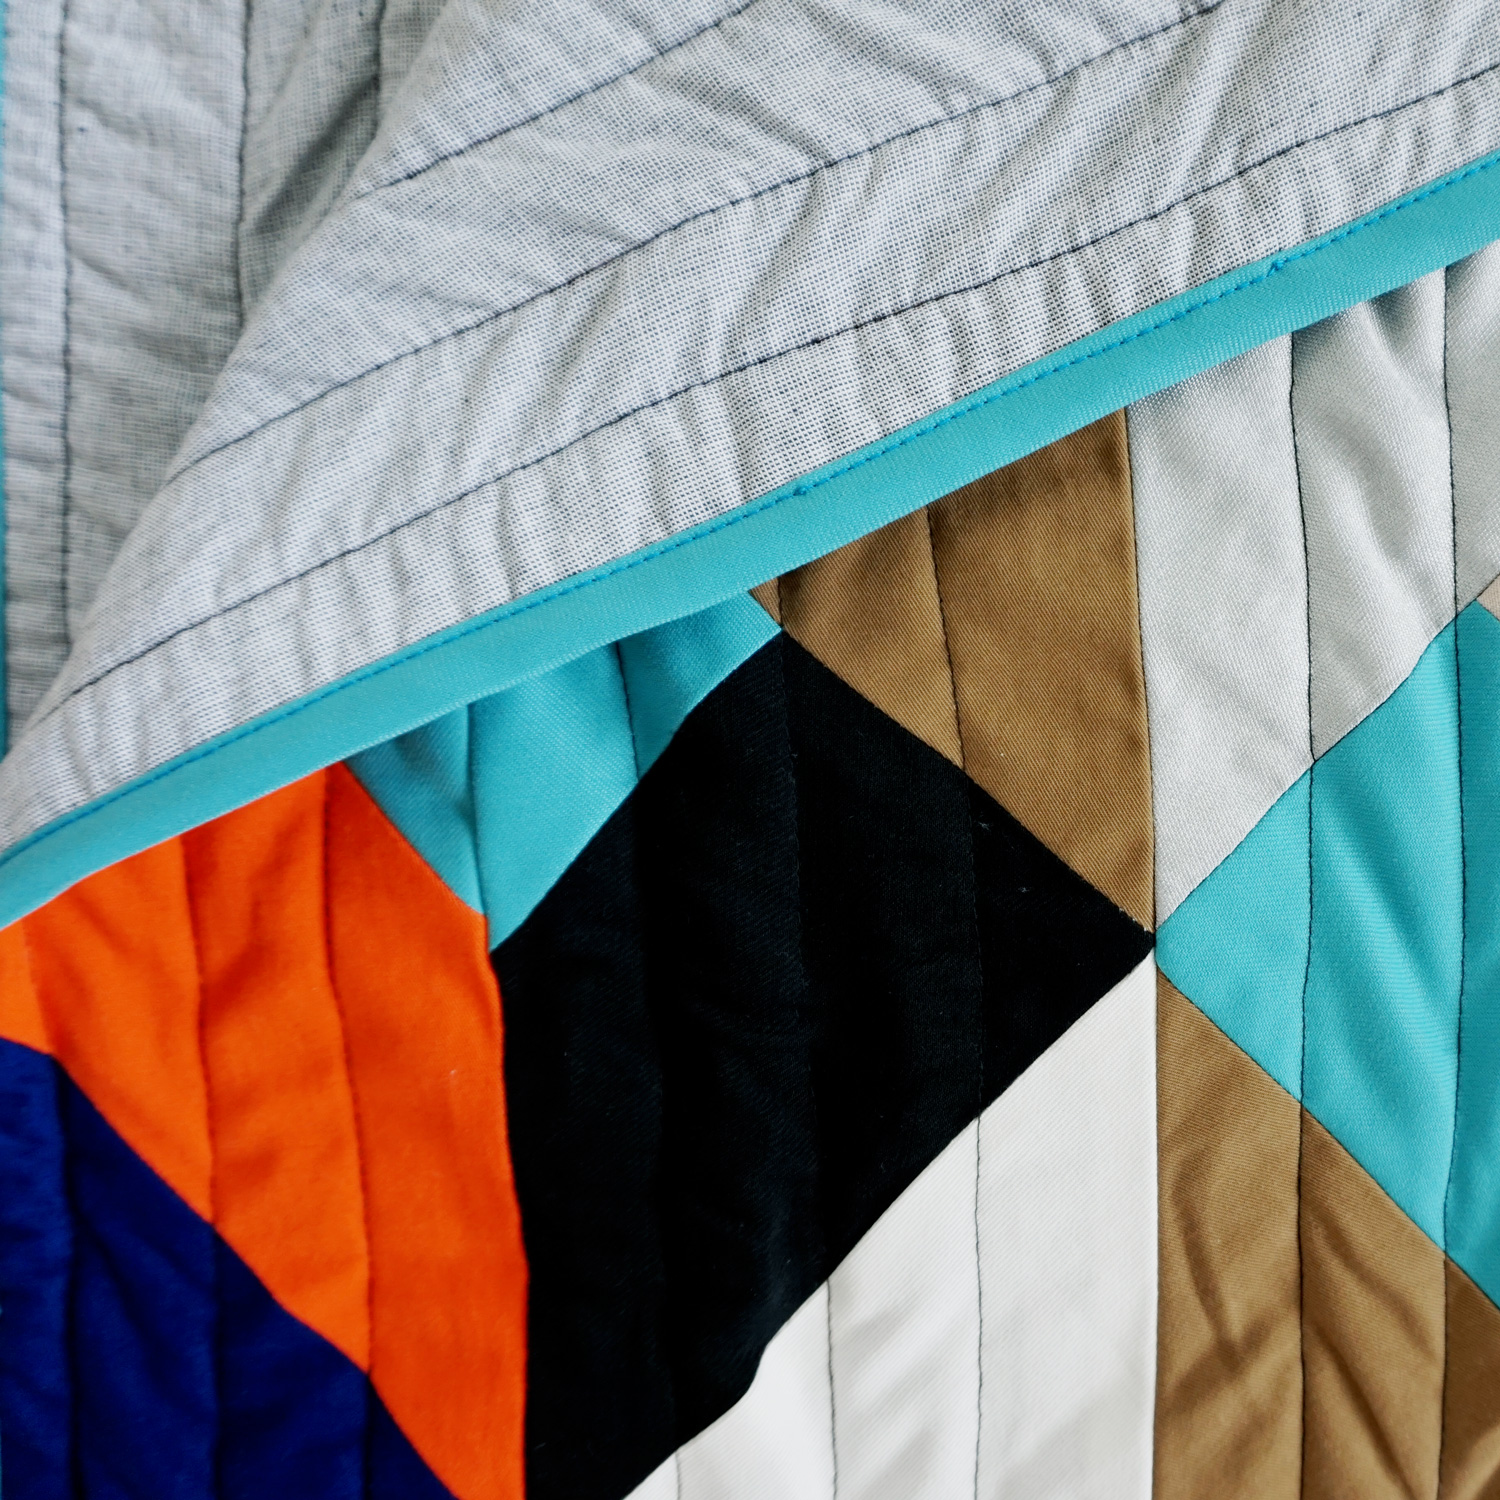 A bold geometric quilt, featuring an architectural pattern of 3D cubes with accent colours of cobalt blue, turquoise and bright orange.